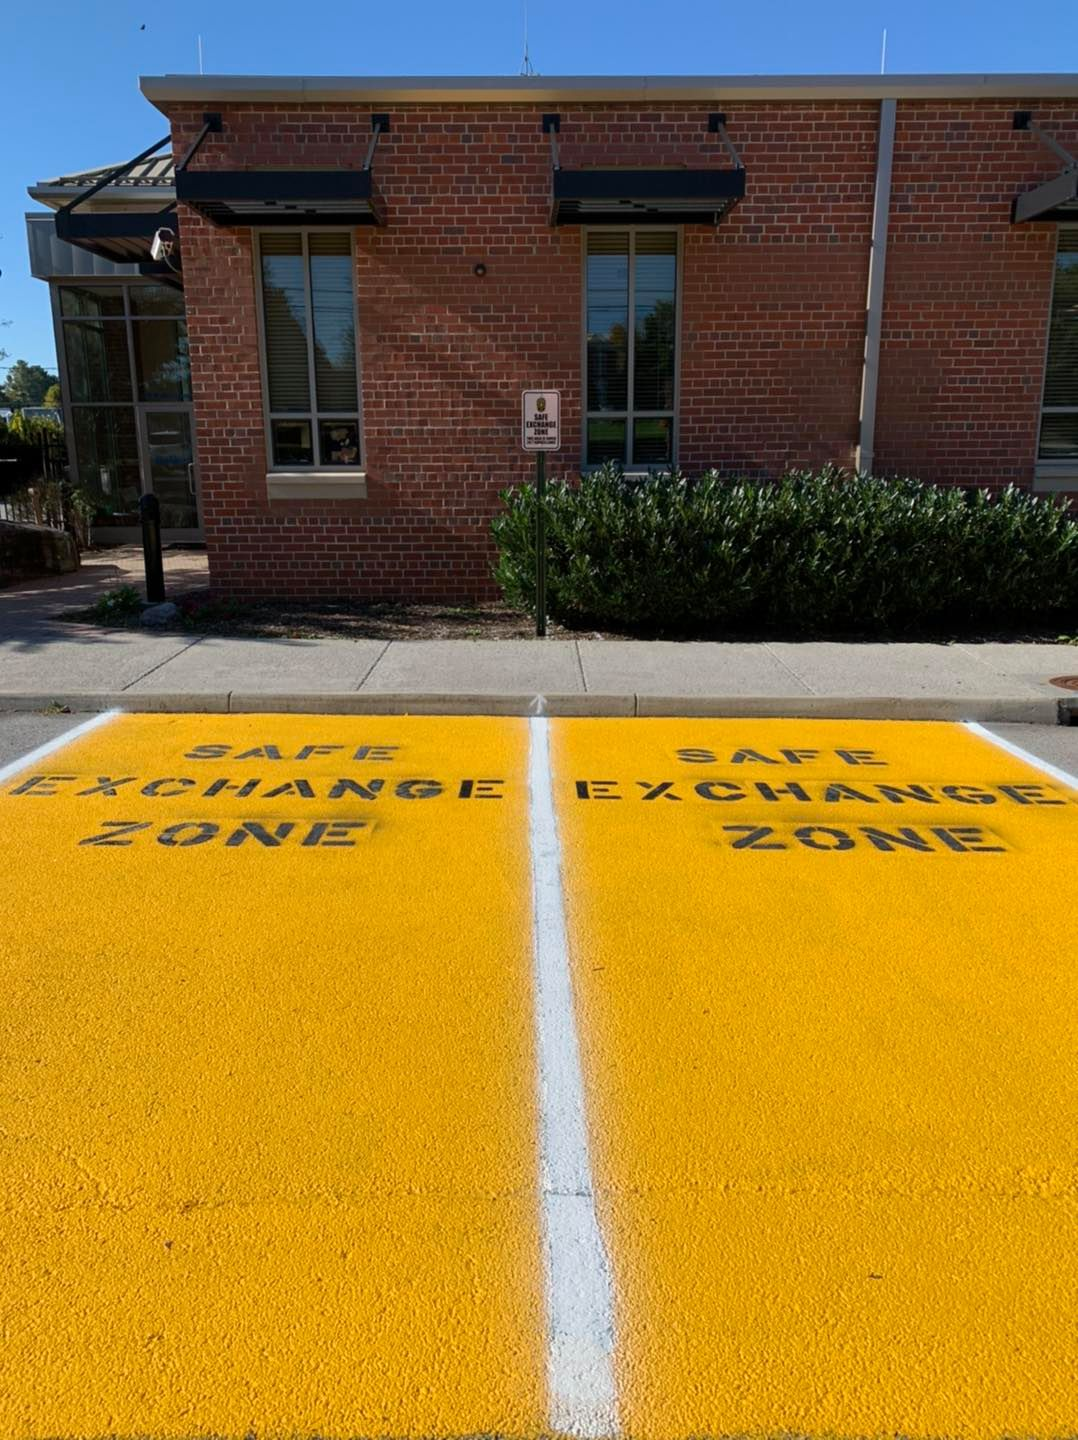 Safe exchange zone installed at police department